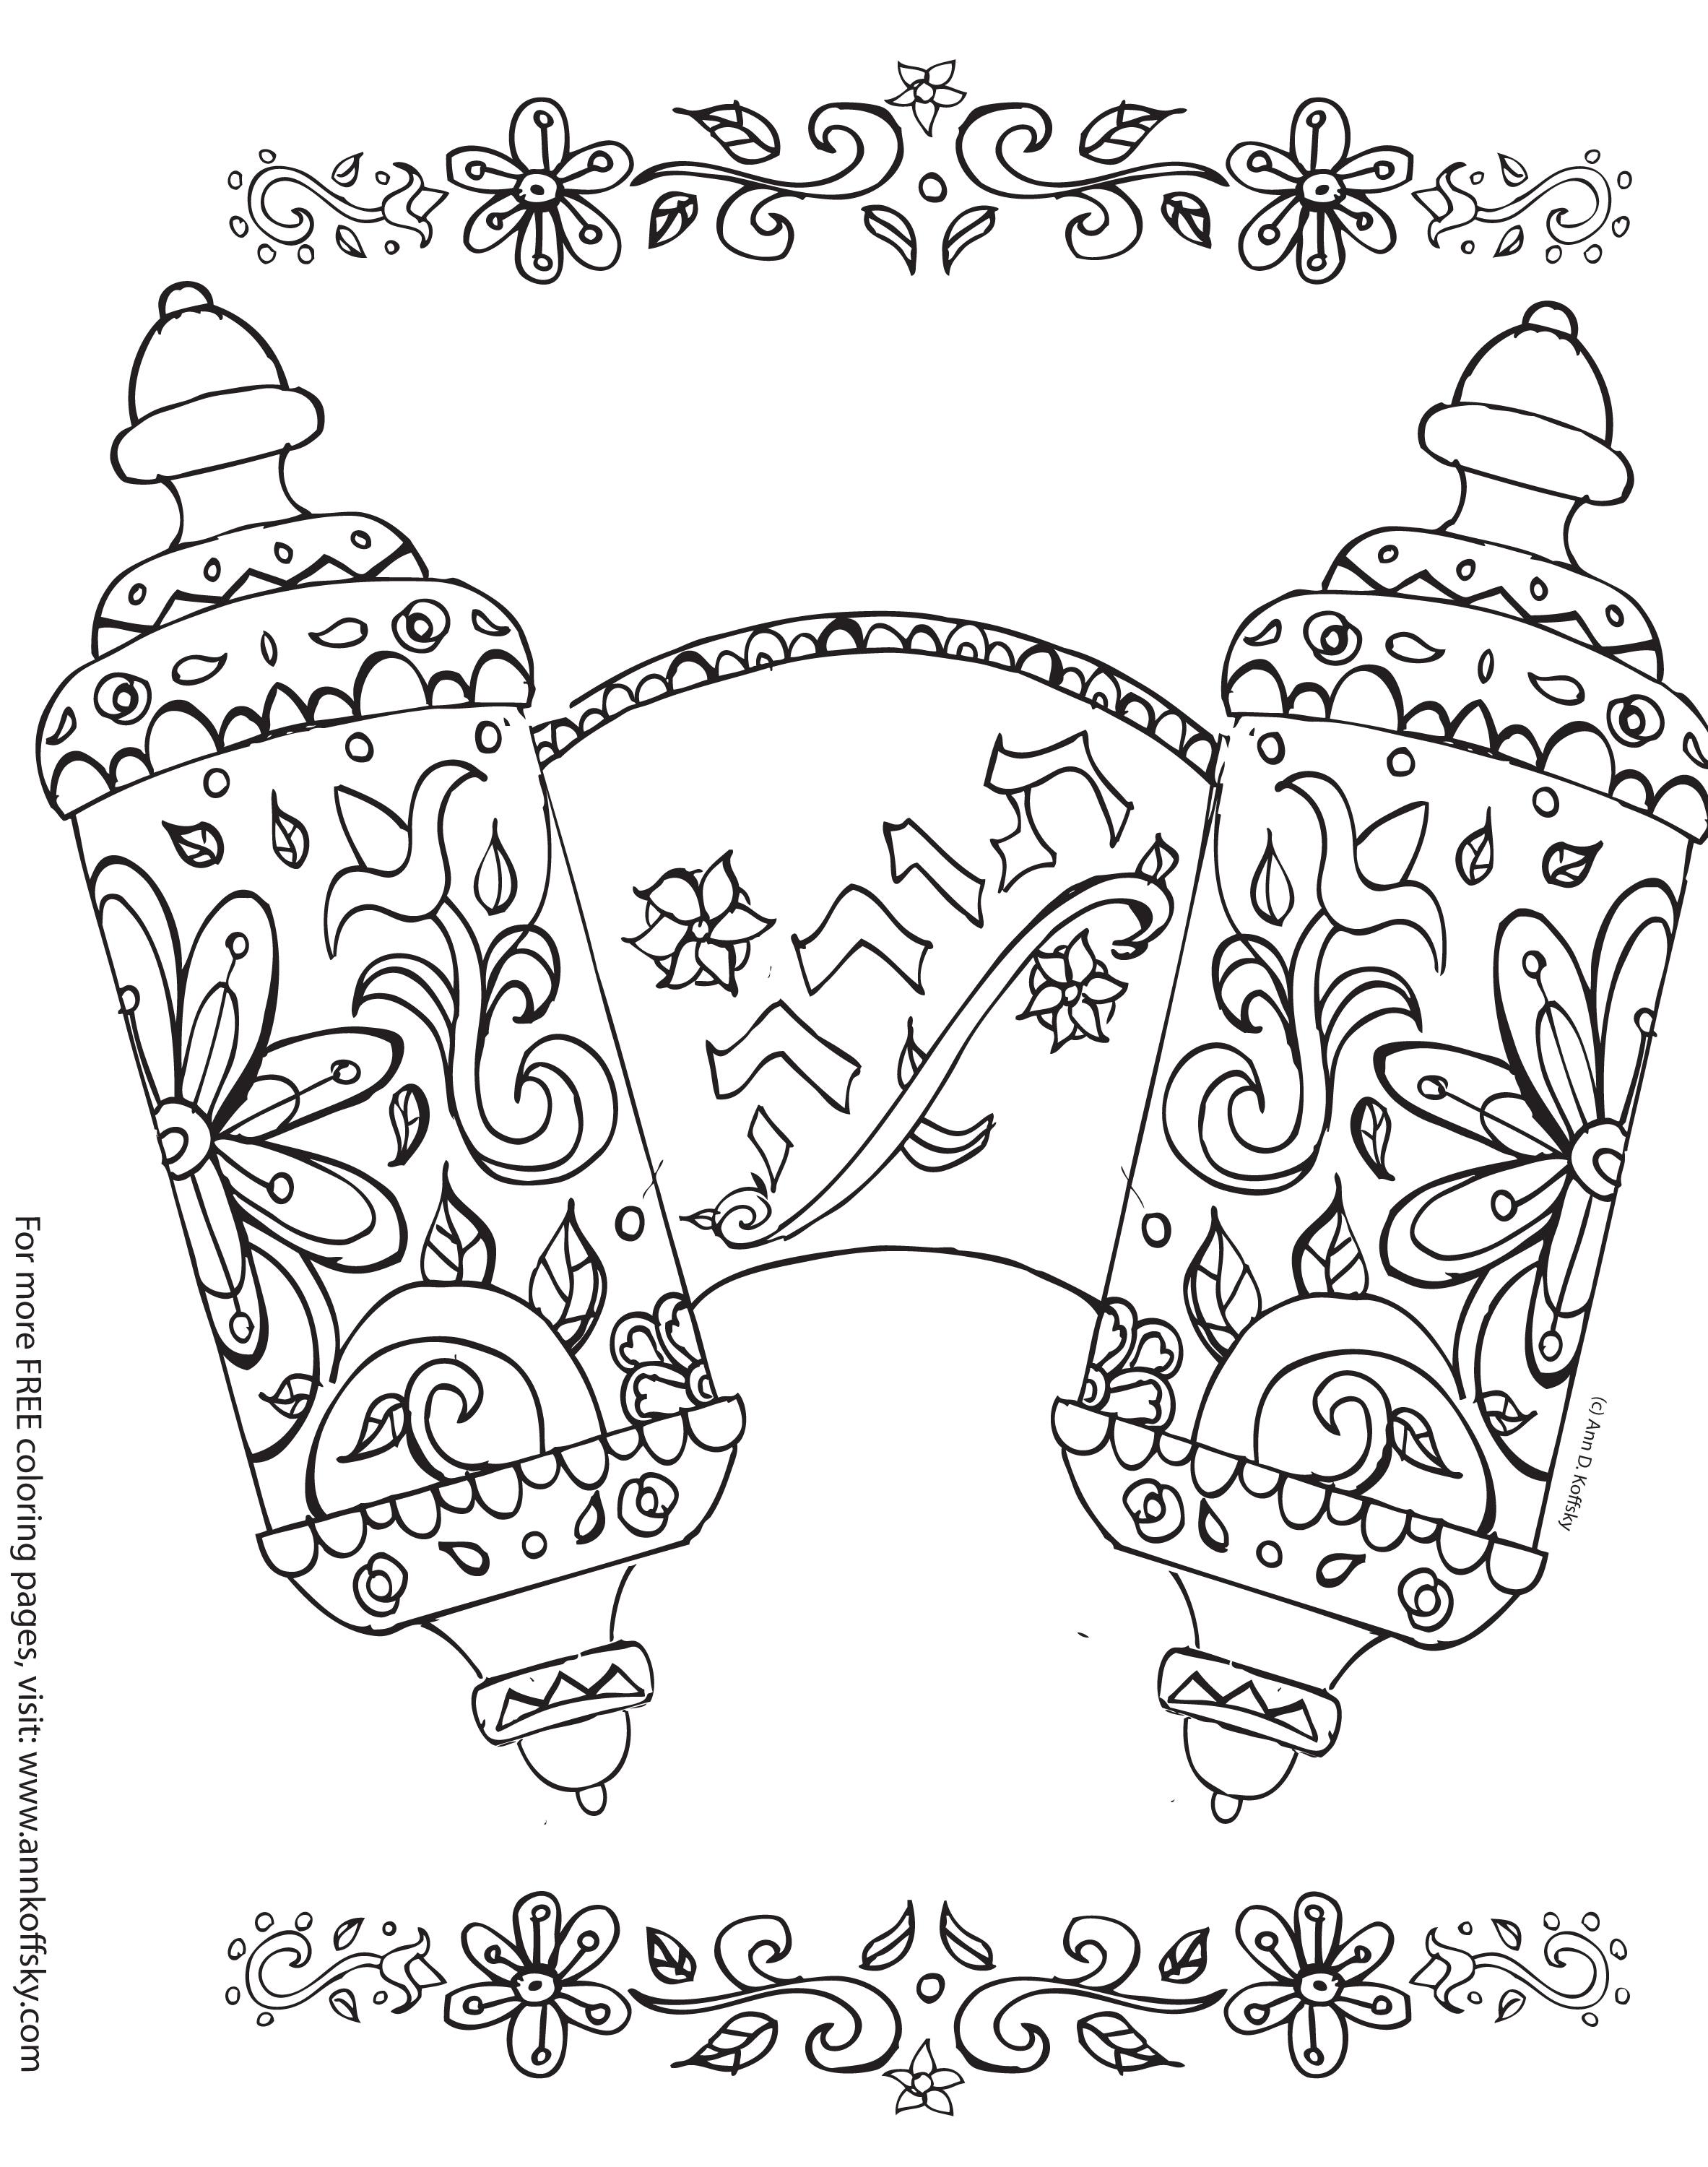 torah tots coloring pages Download-Torah Tots Shavuot Coloring Pages or click here to it as a pdf 11-f